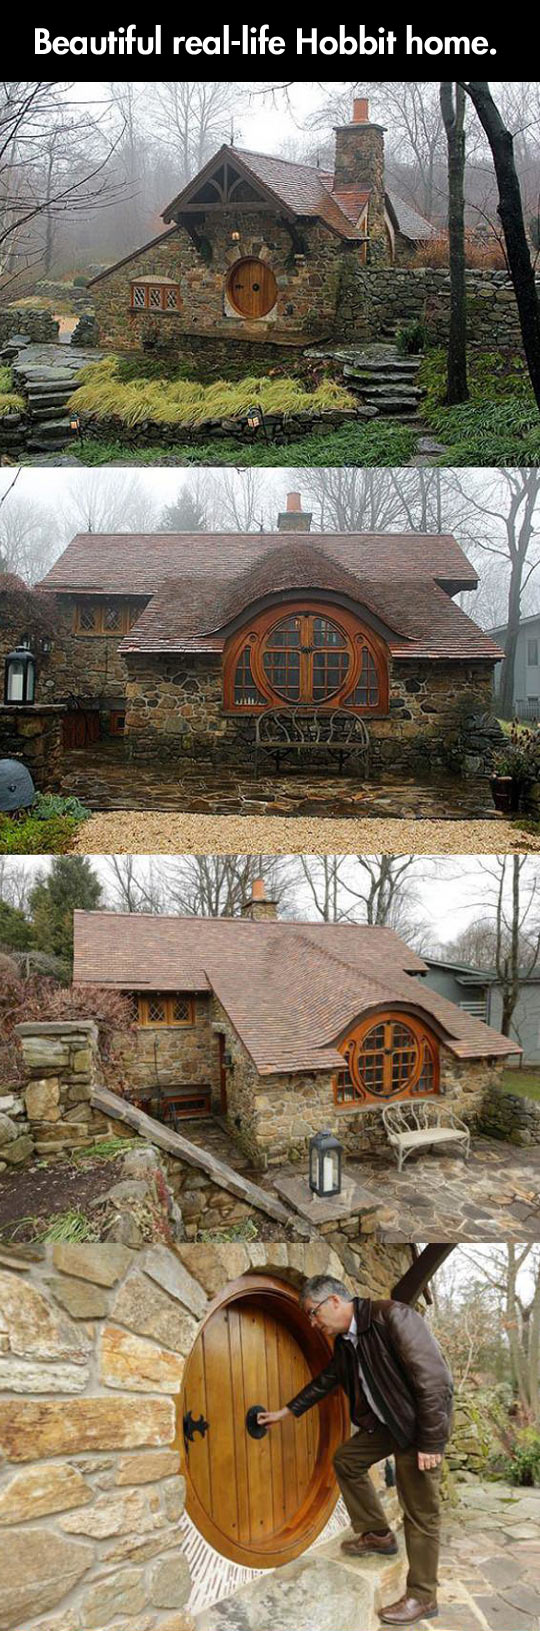 cool-real-life-Hobbit-home